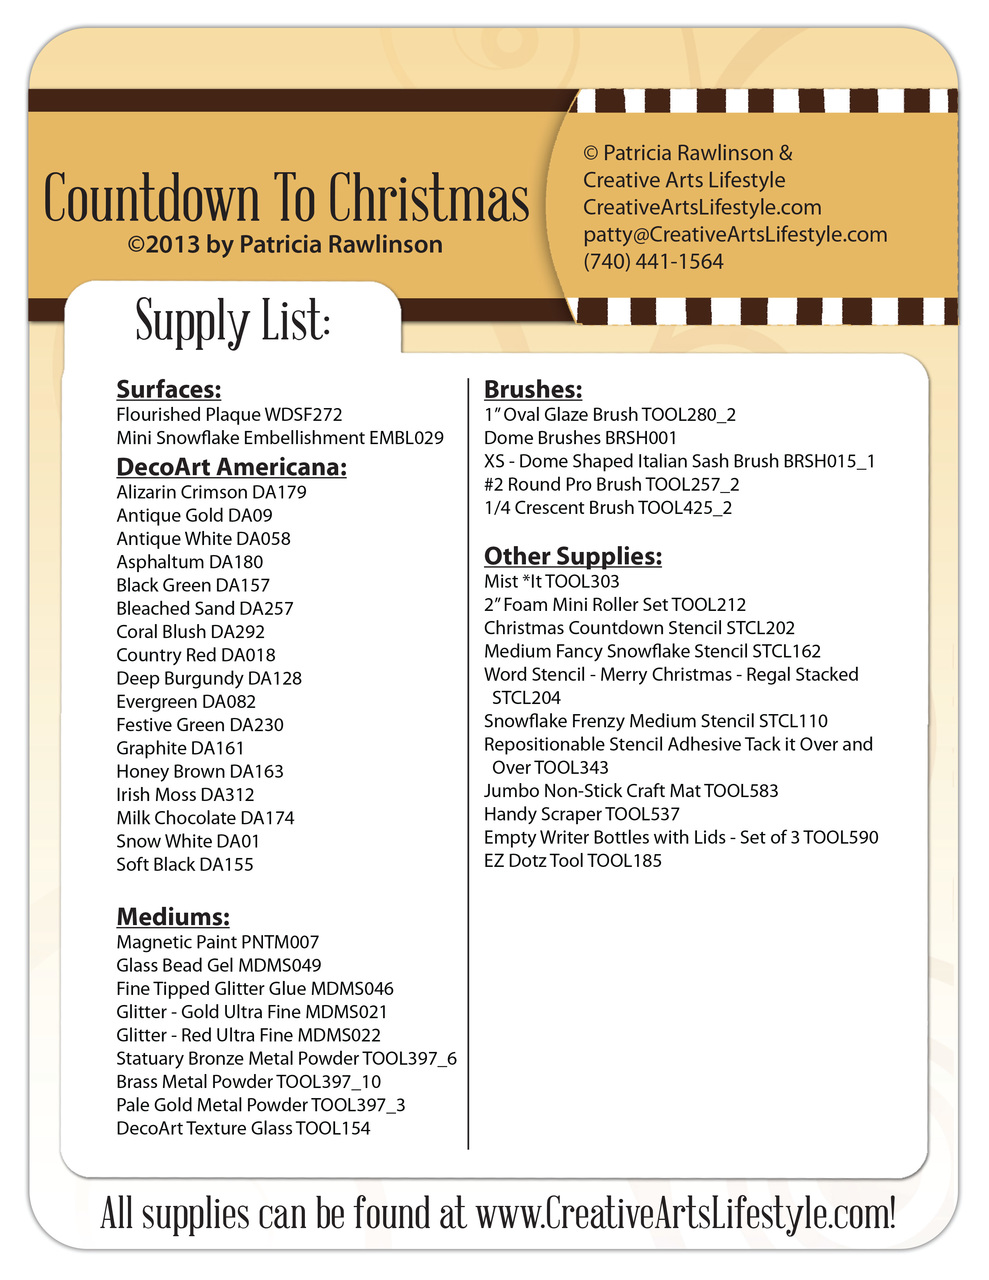 Countdown to Christmas E-Packet - Patricia Rawlinson